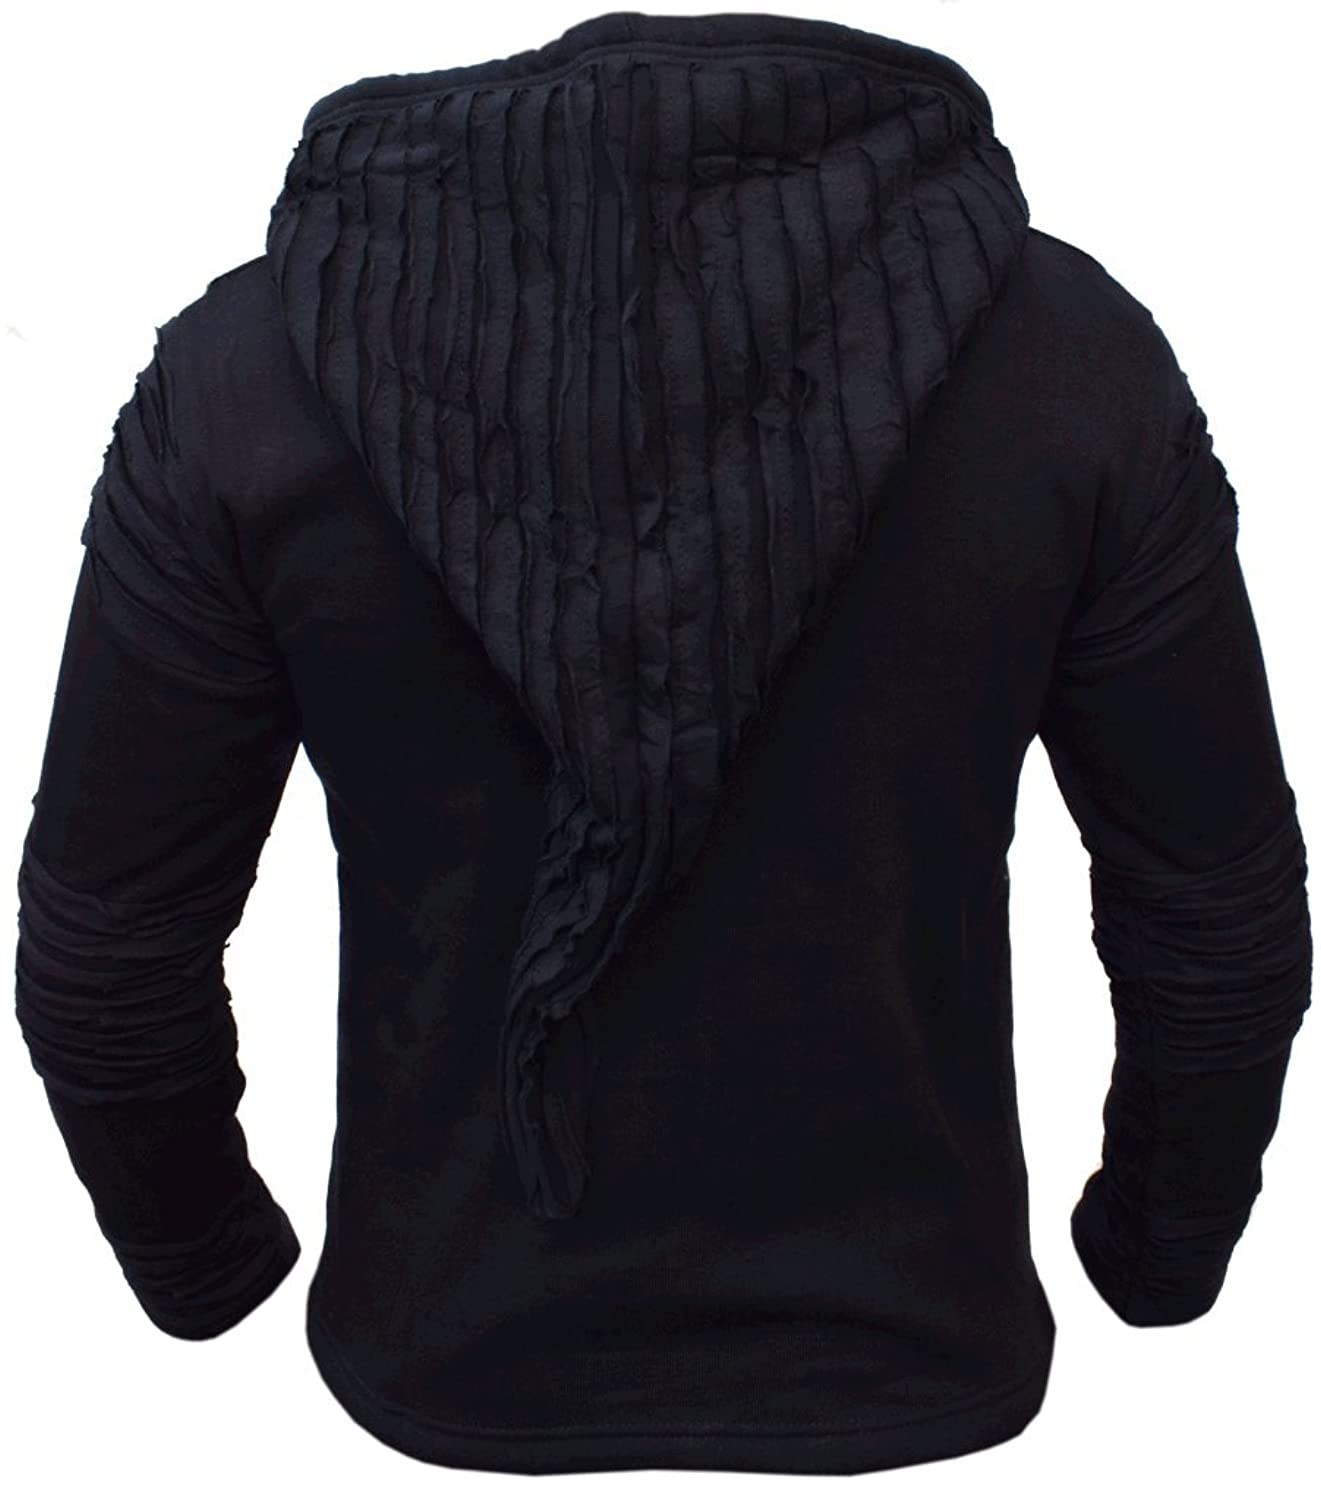 Little Kathmandu Men's Cotton Black Razor Cut Ripped Hoodie Jacket Winter X-Large